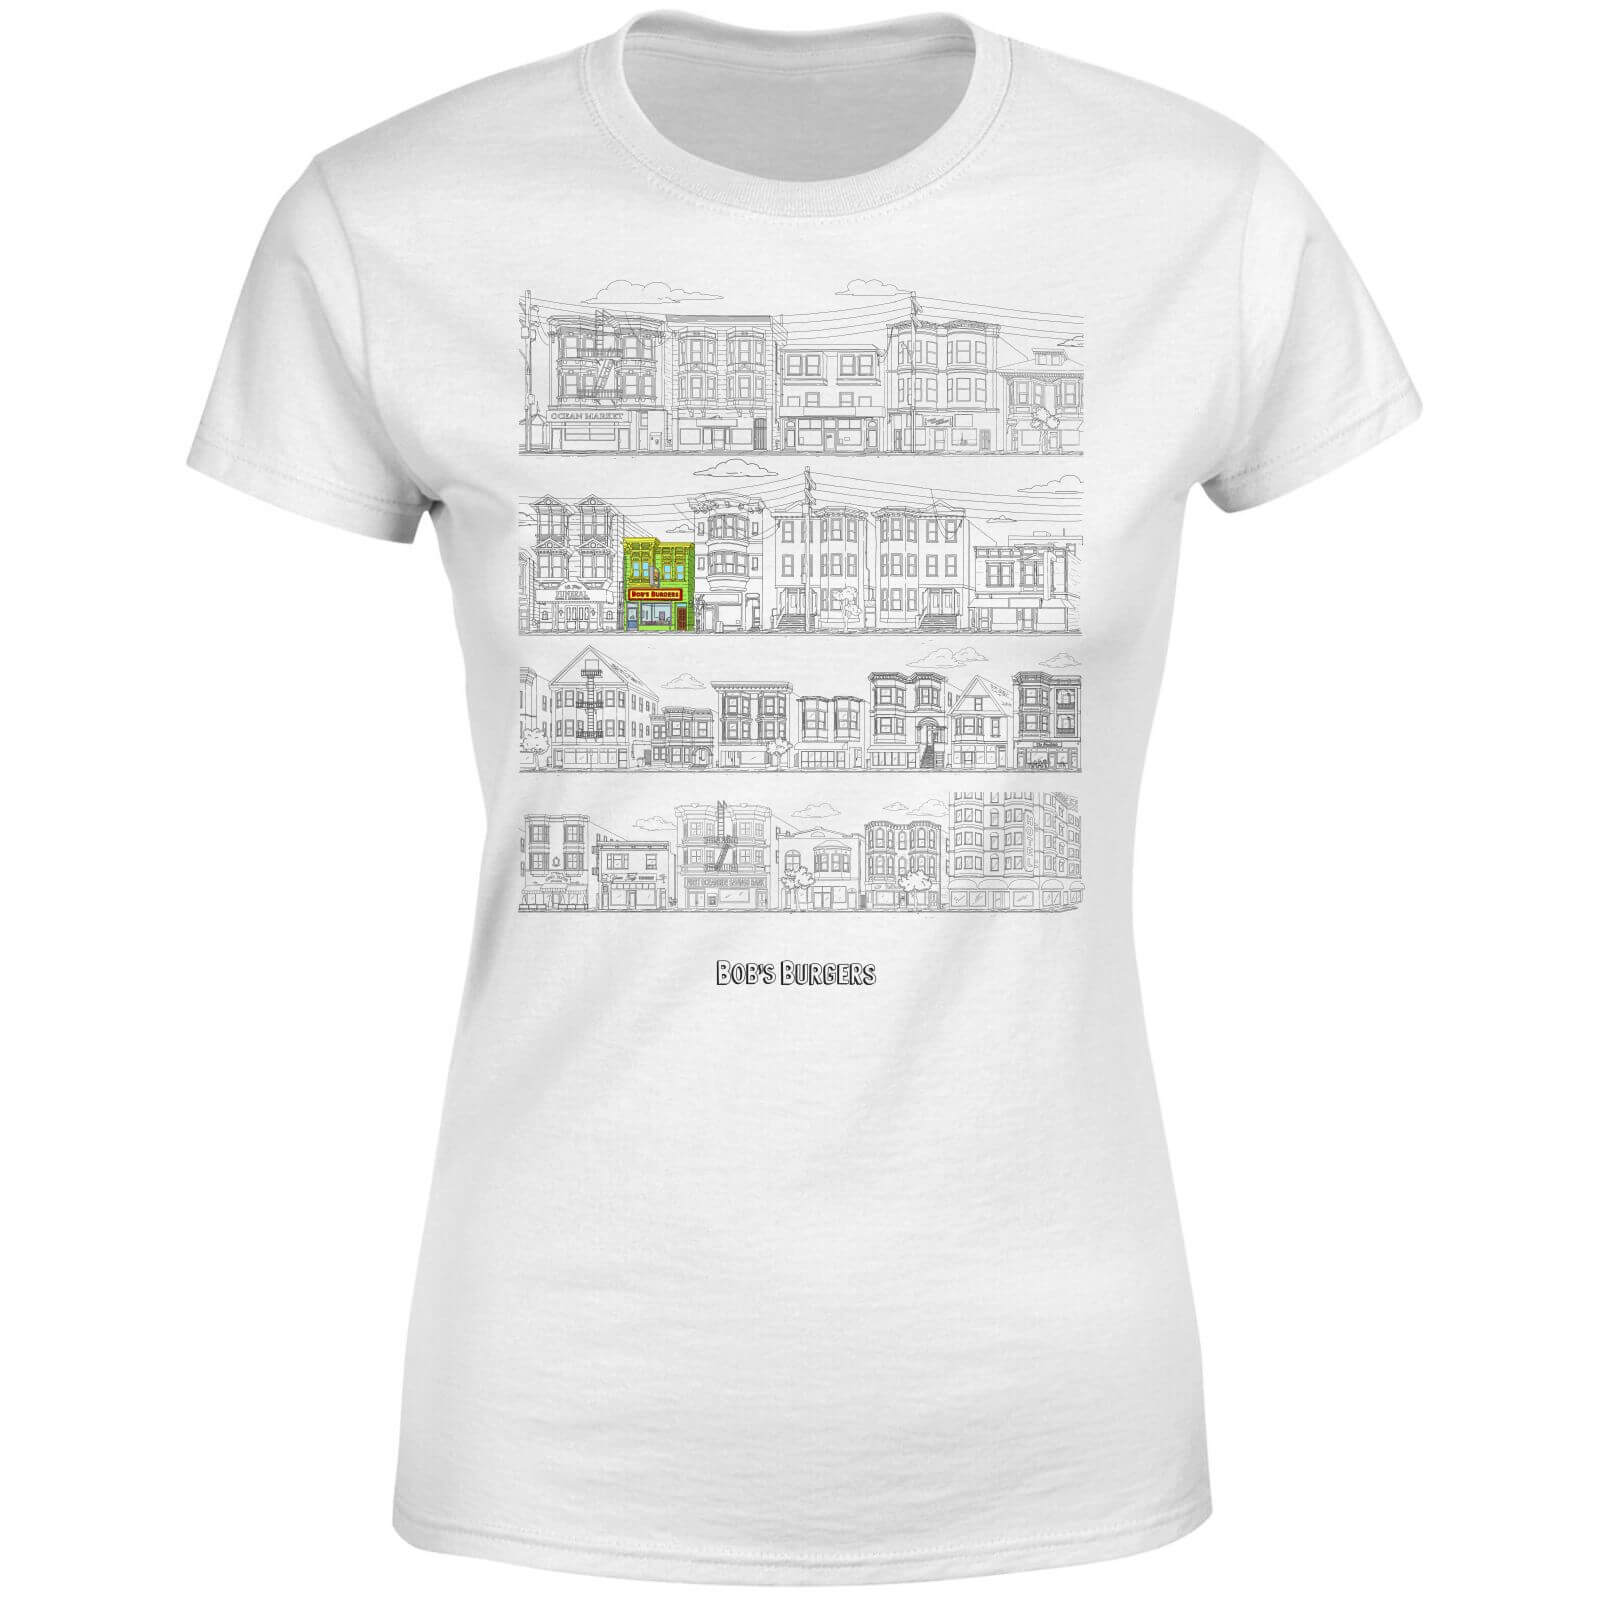 Bobs Burgers Street Plan Drawing Women